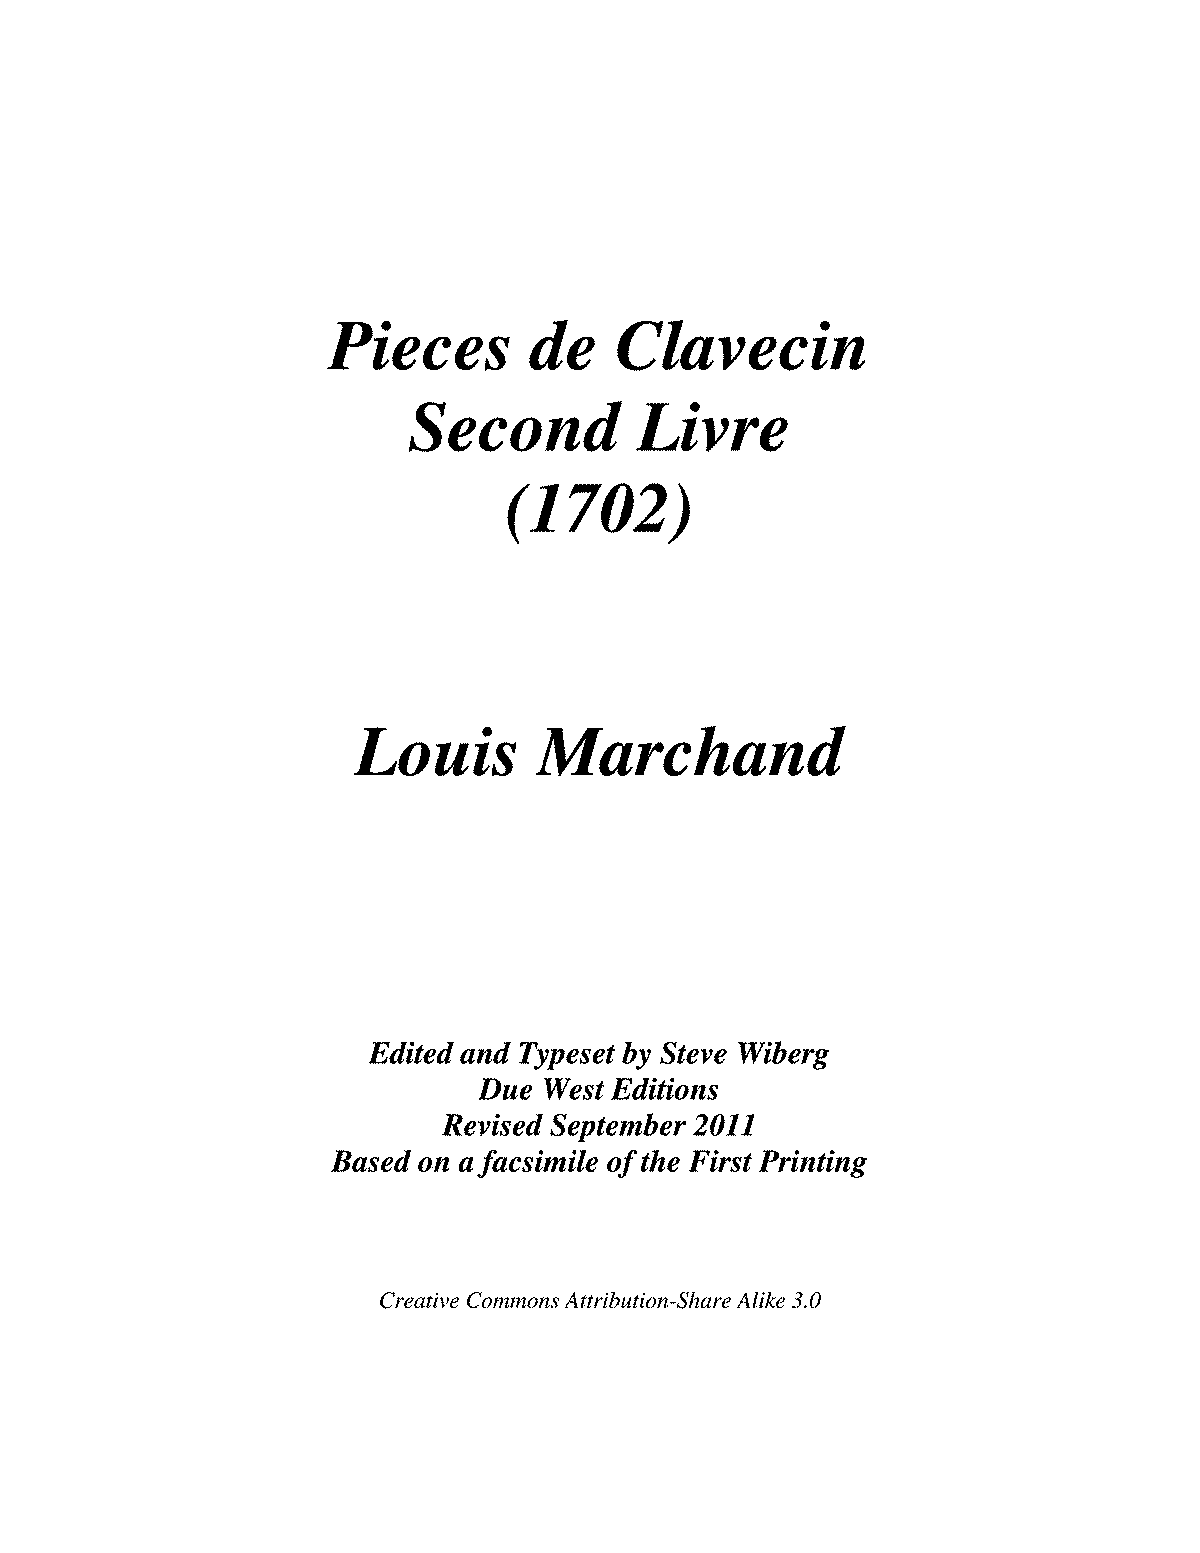 Marchand SecondLivre Complete.pdf